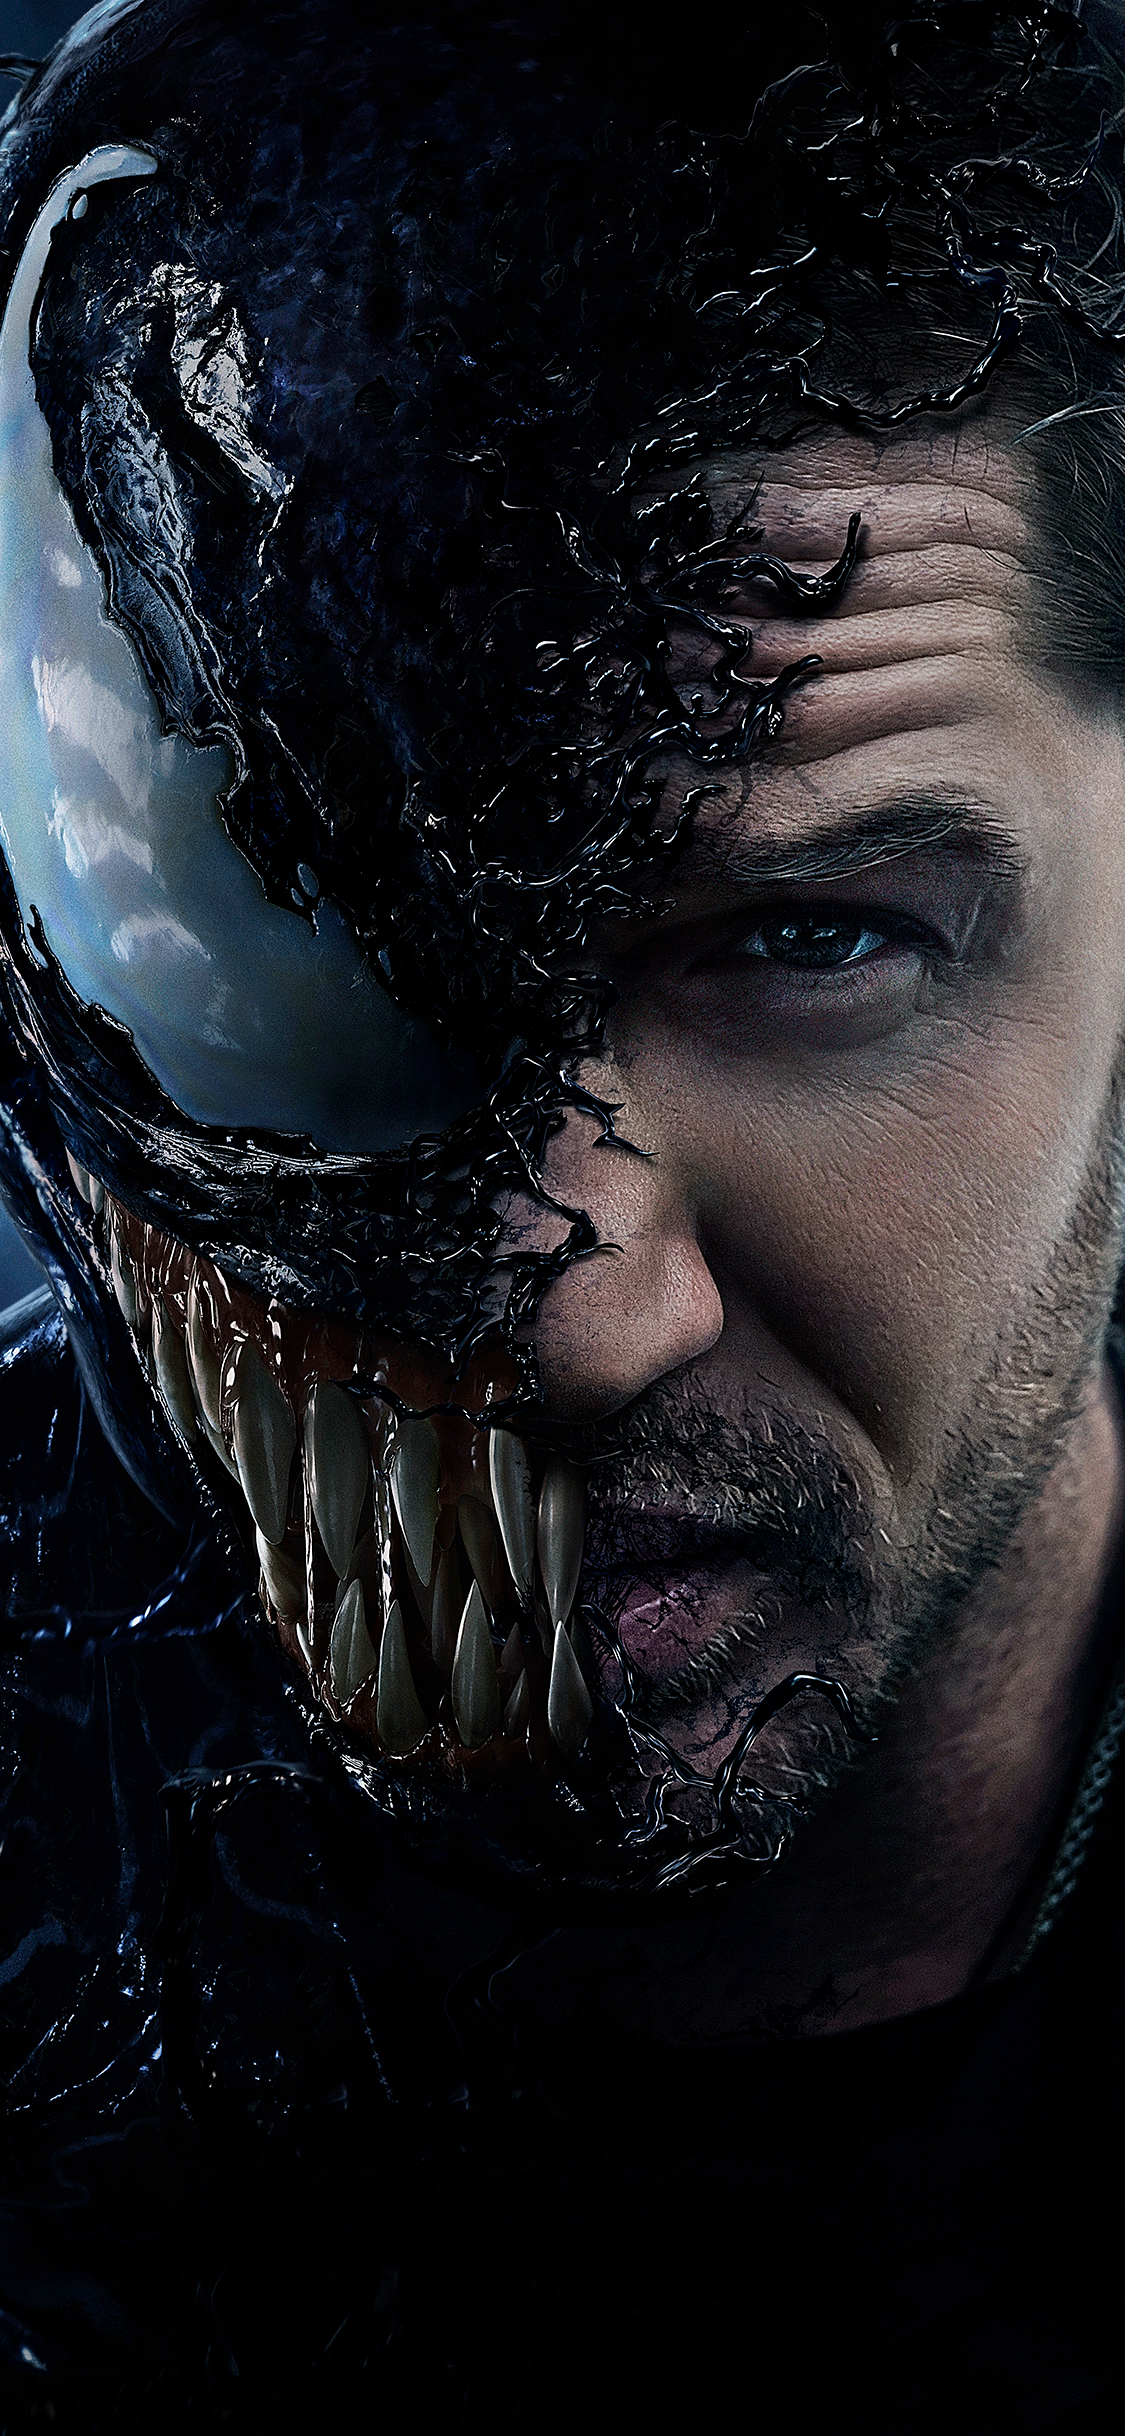 iPhone wallpaper venom movie face Fonds d'écran iPhone du 10/10/2018